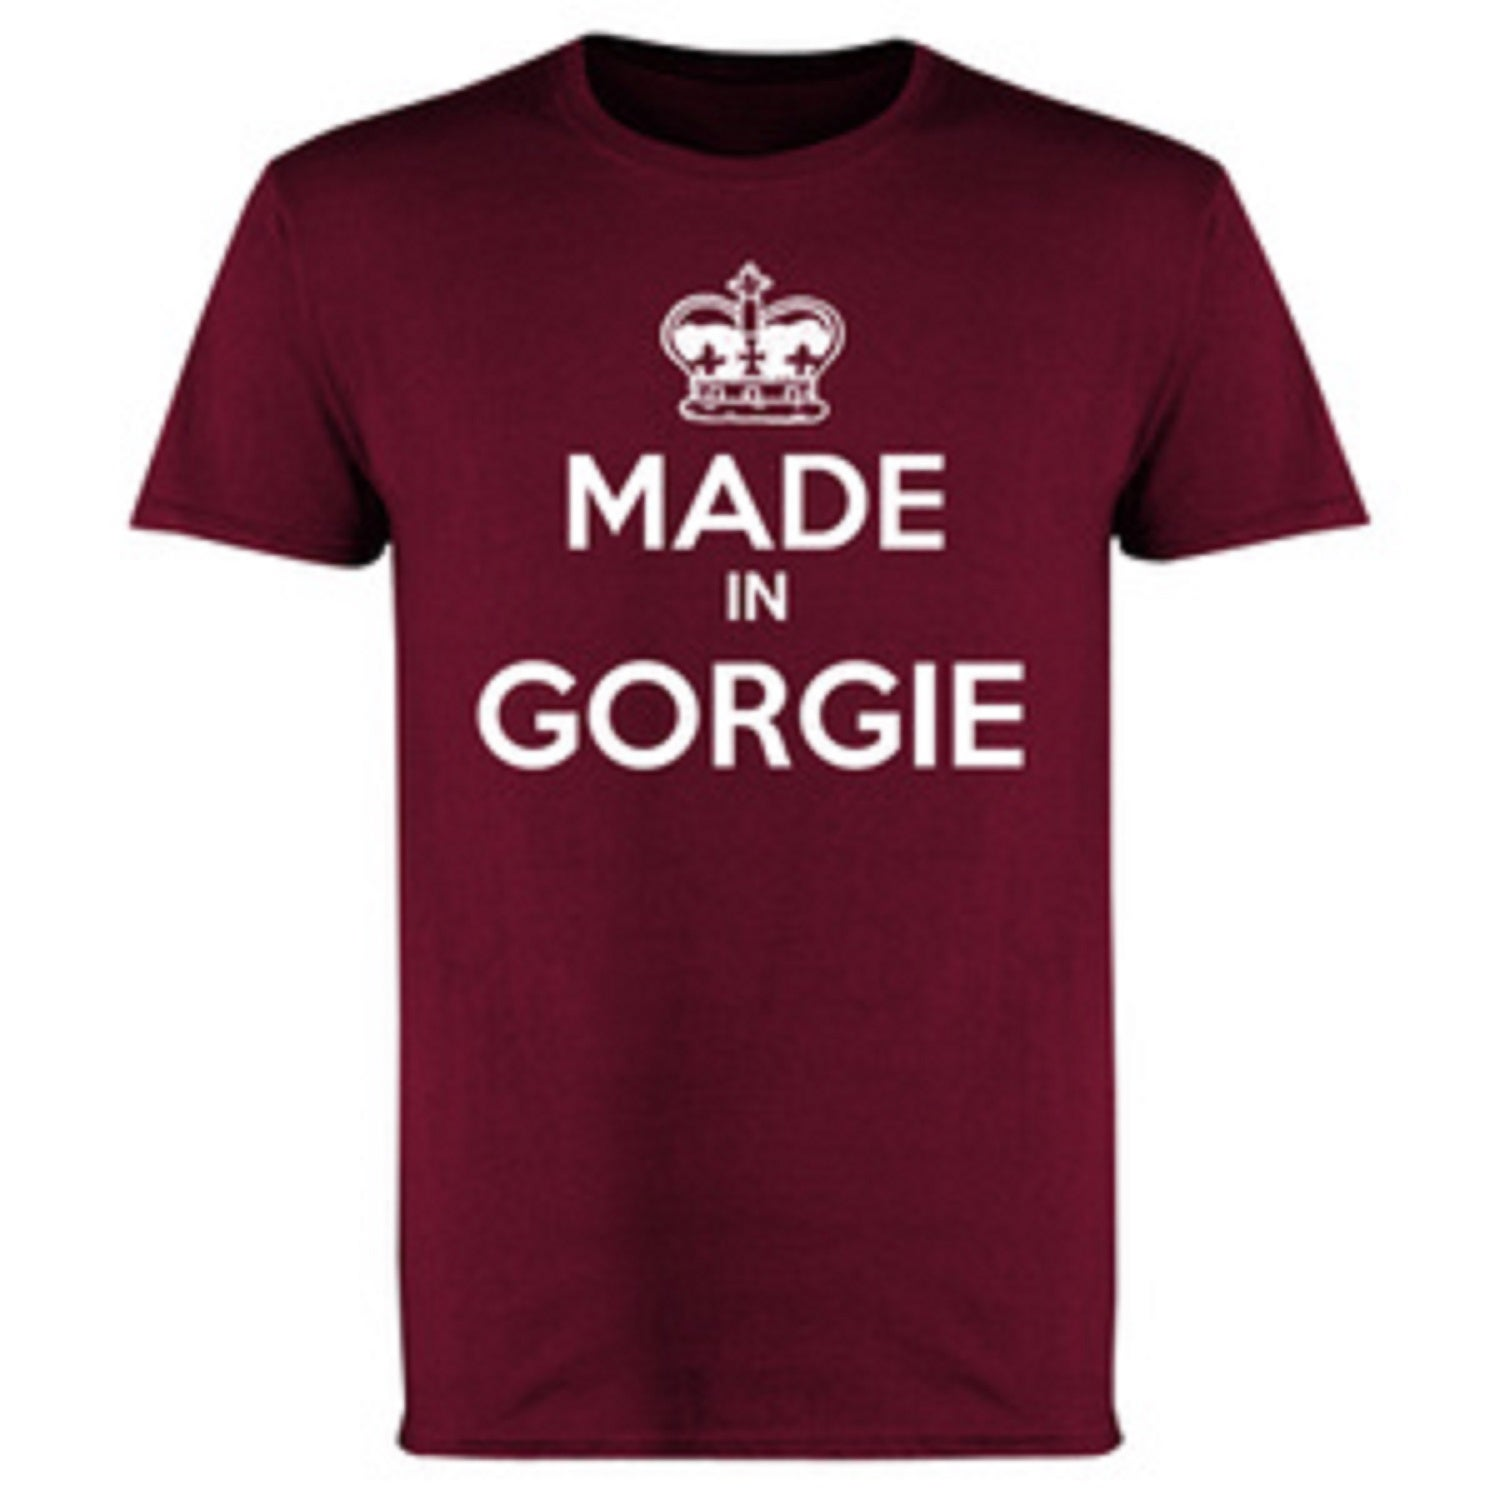 Hearts, Heart Of Midlothian, Made In Gorgie T-Shirts.